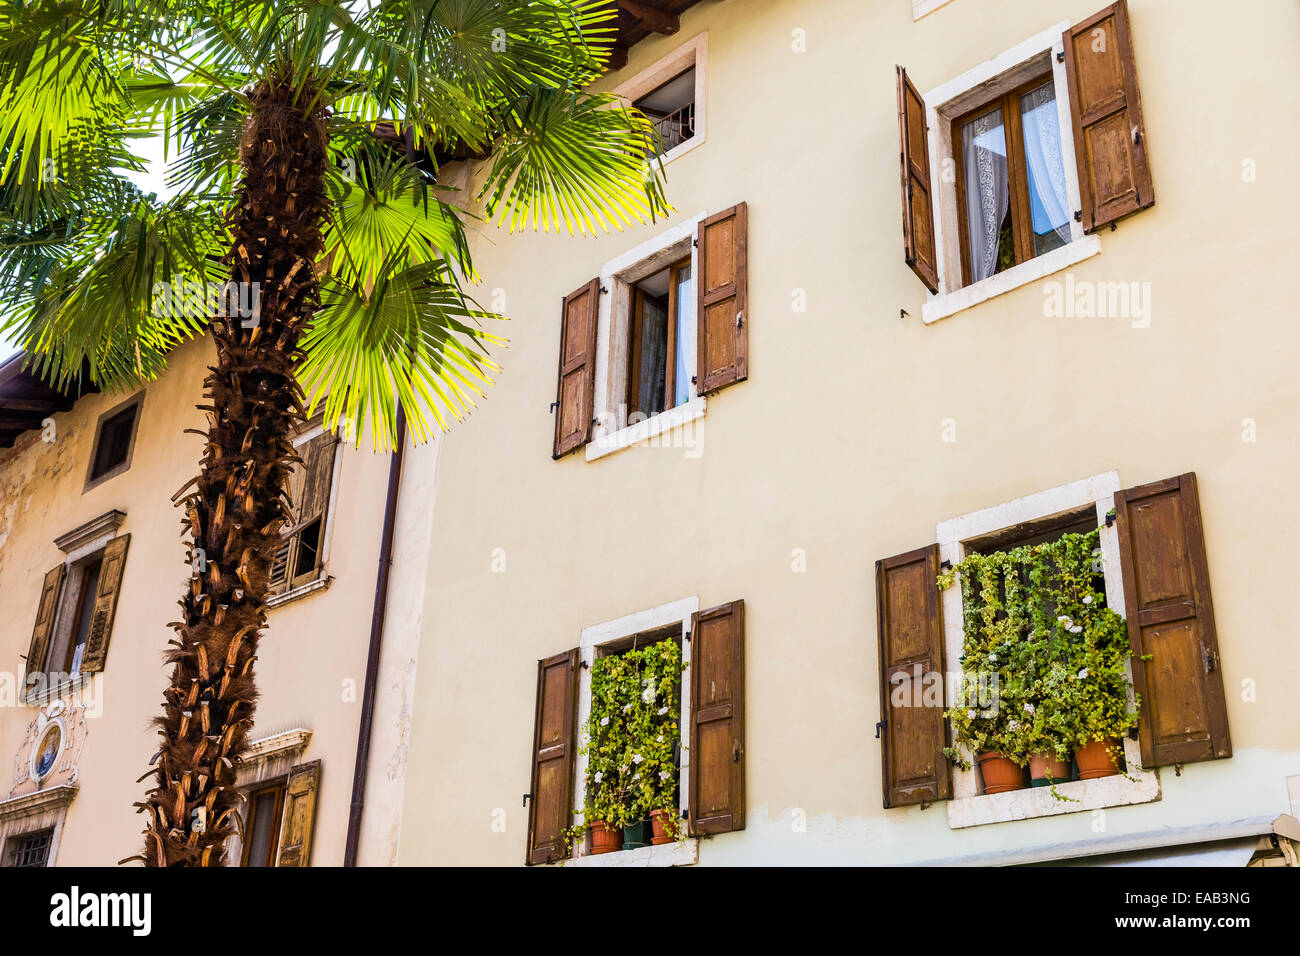 Shuttered windows on a colourful building in Arco, Lake Garda, Trentino, Italy - Stock Image